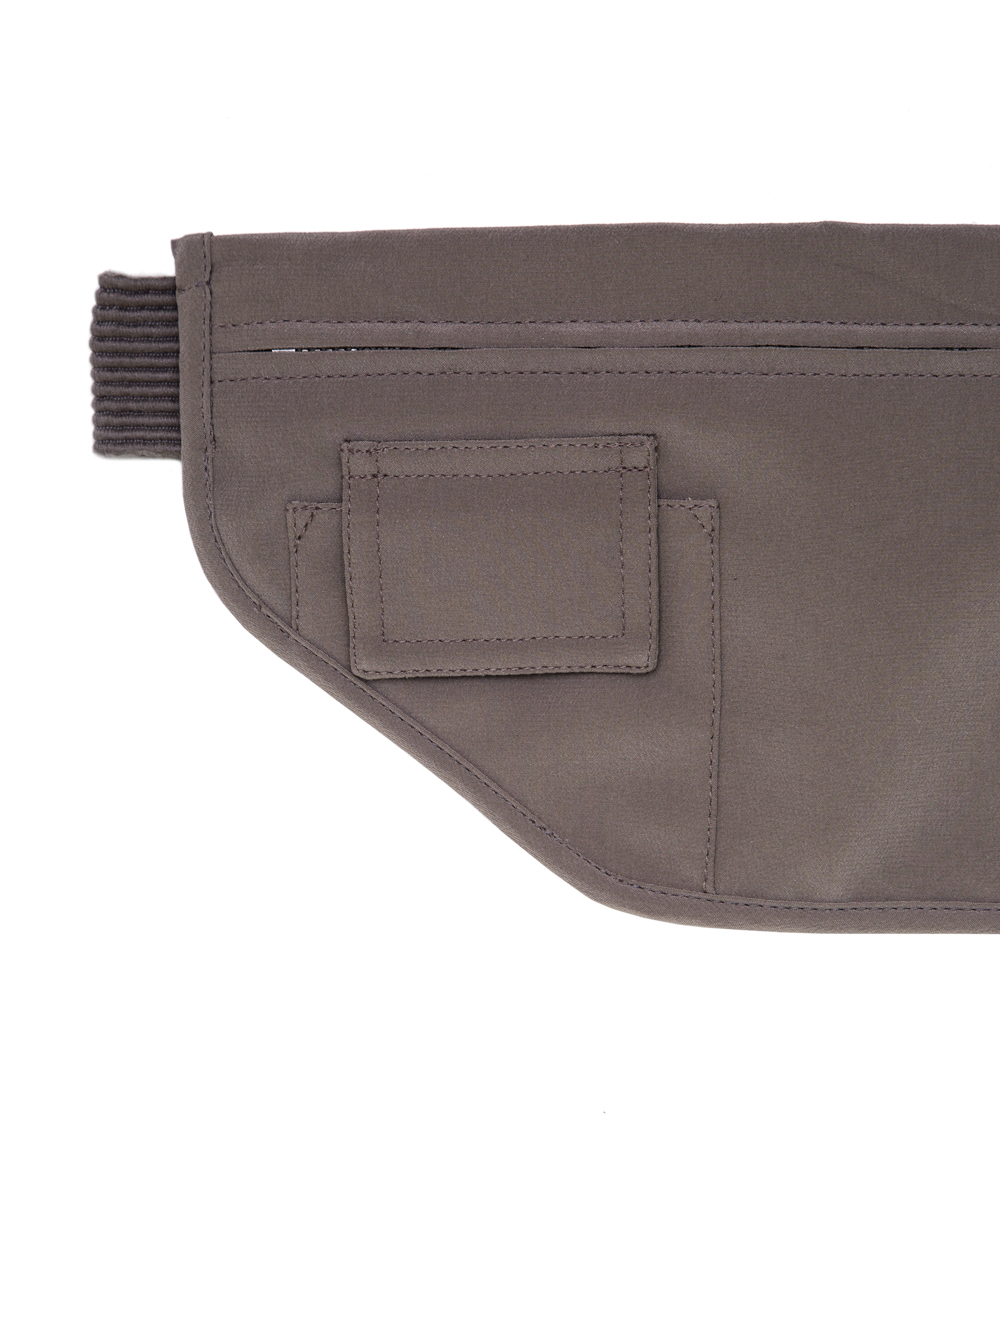 RICK OWENS SS19 BABEL MONEY BELT IN DUST GREY SILK CREPE